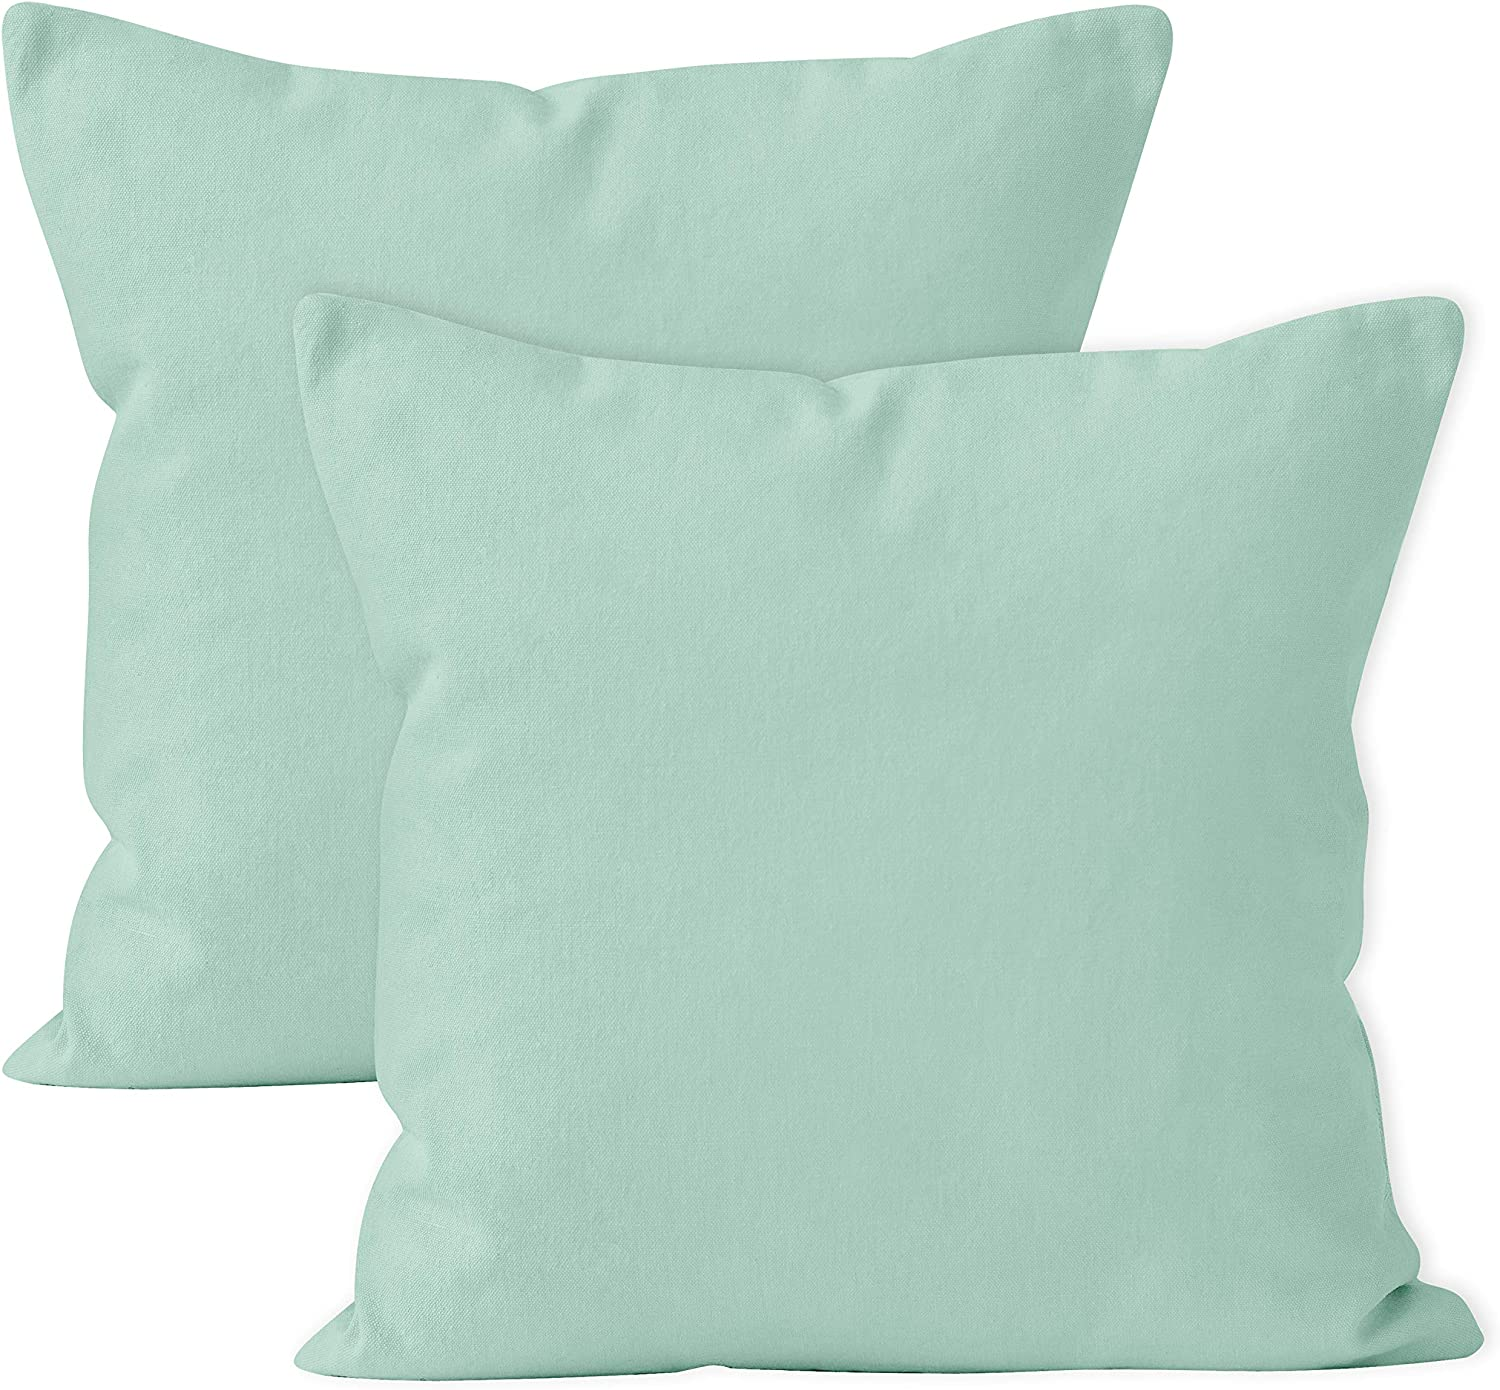 Encasa XO Throw Cushion Cover 2pc Set - Mint Green - 18 x 18 inch Solid Dyed Cotton Canvas Square Accent Decorative Pillow Case for Couch Sofa Chair Bed & Home